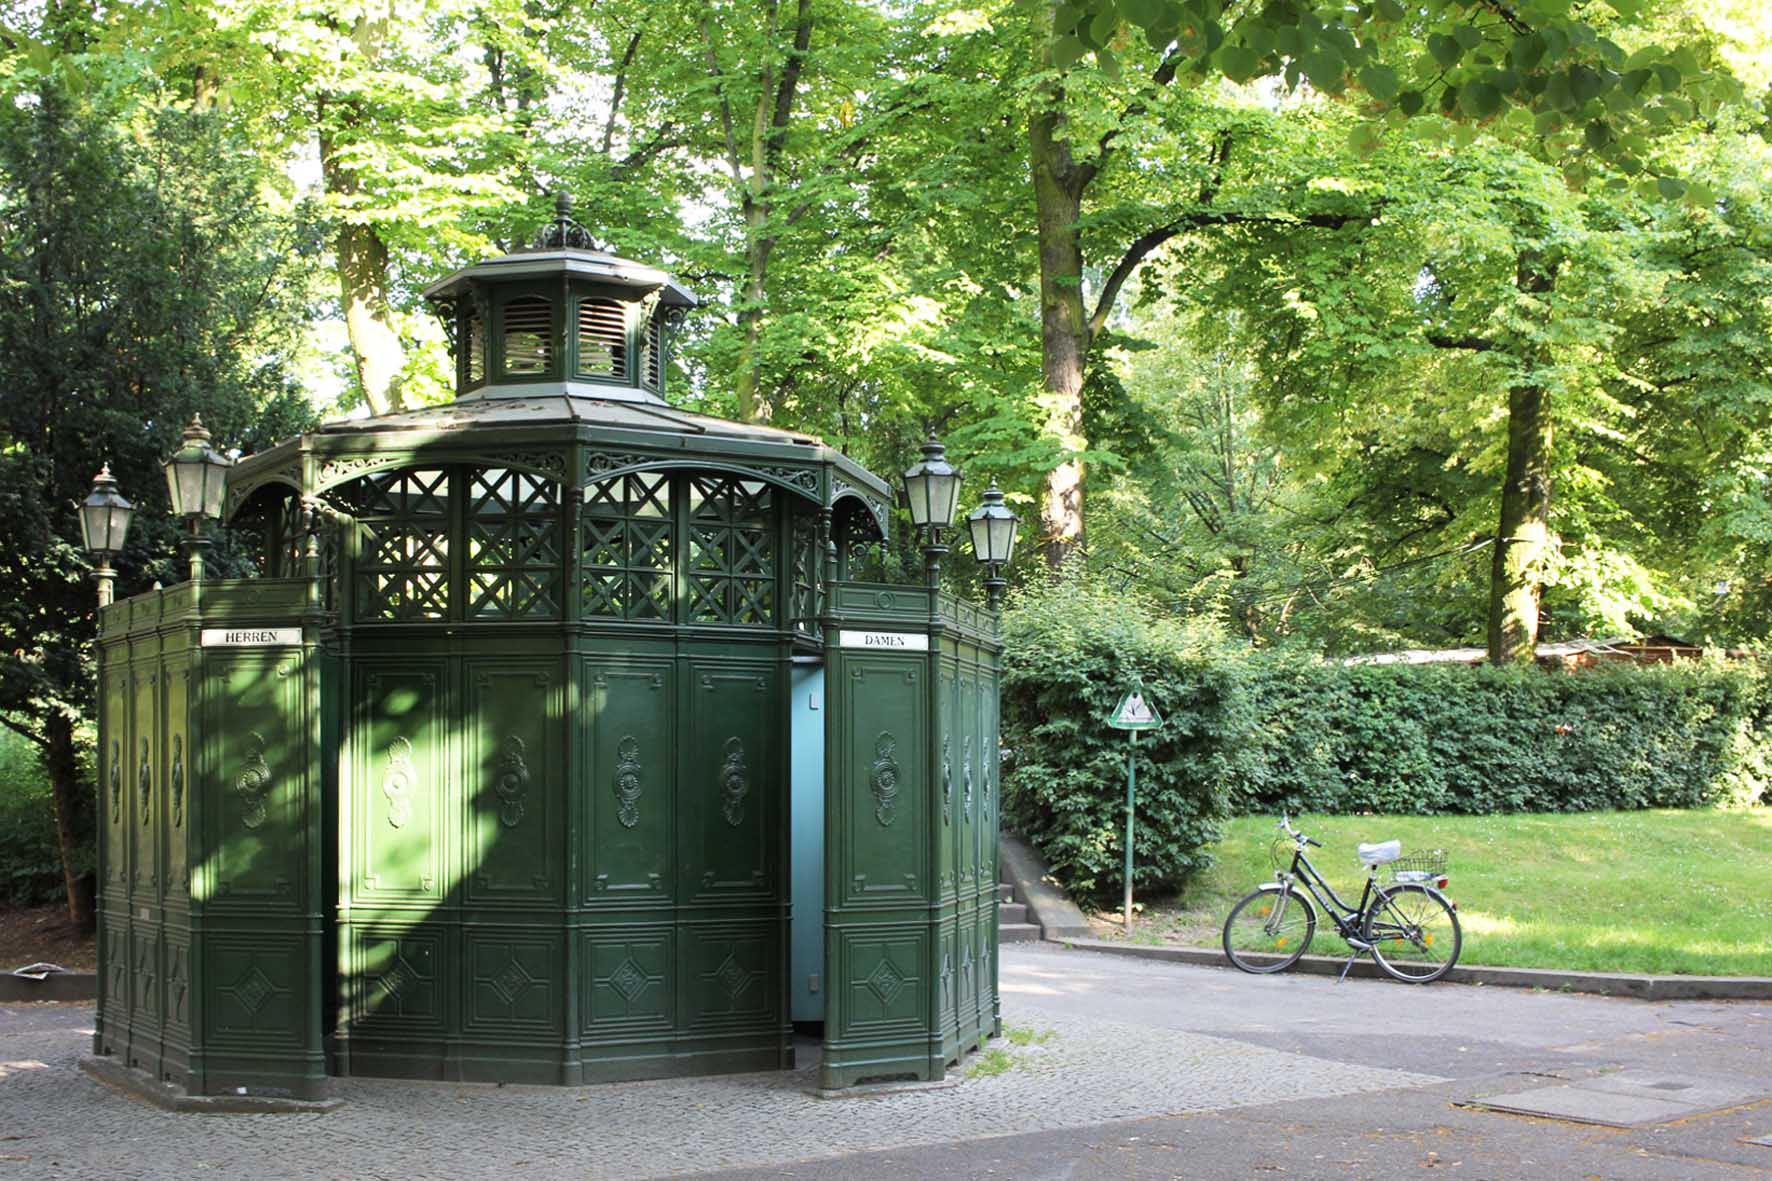 Café Achteck - Rüdesheimer Platz - an example of Berlin's classic 19th century green cast iron public toilets